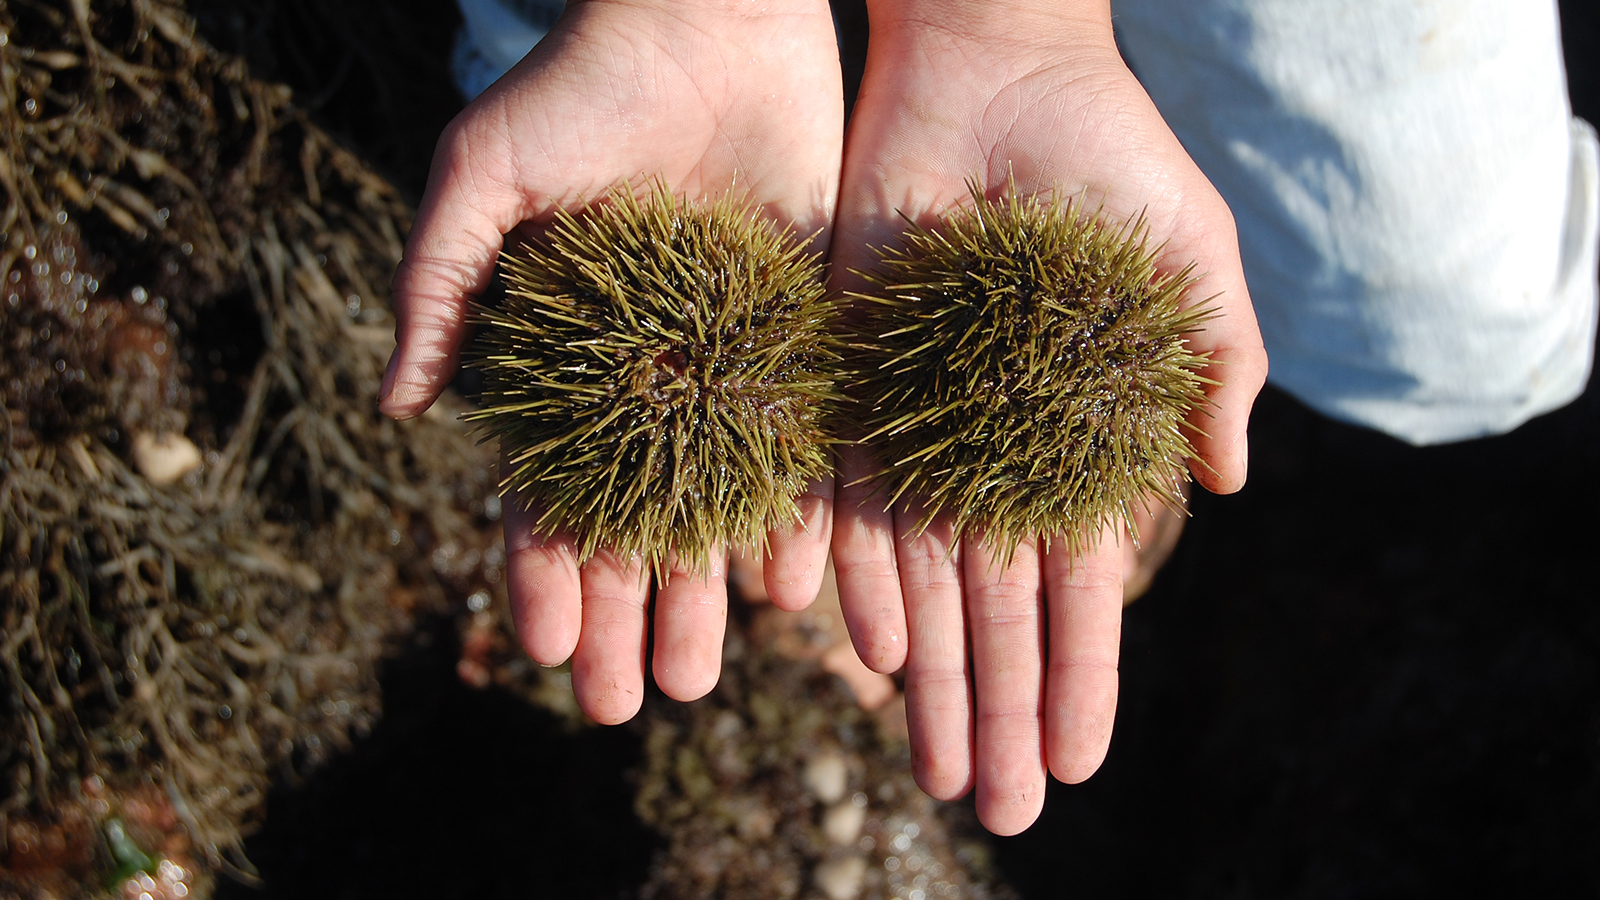 two urchins held in outstretched hands